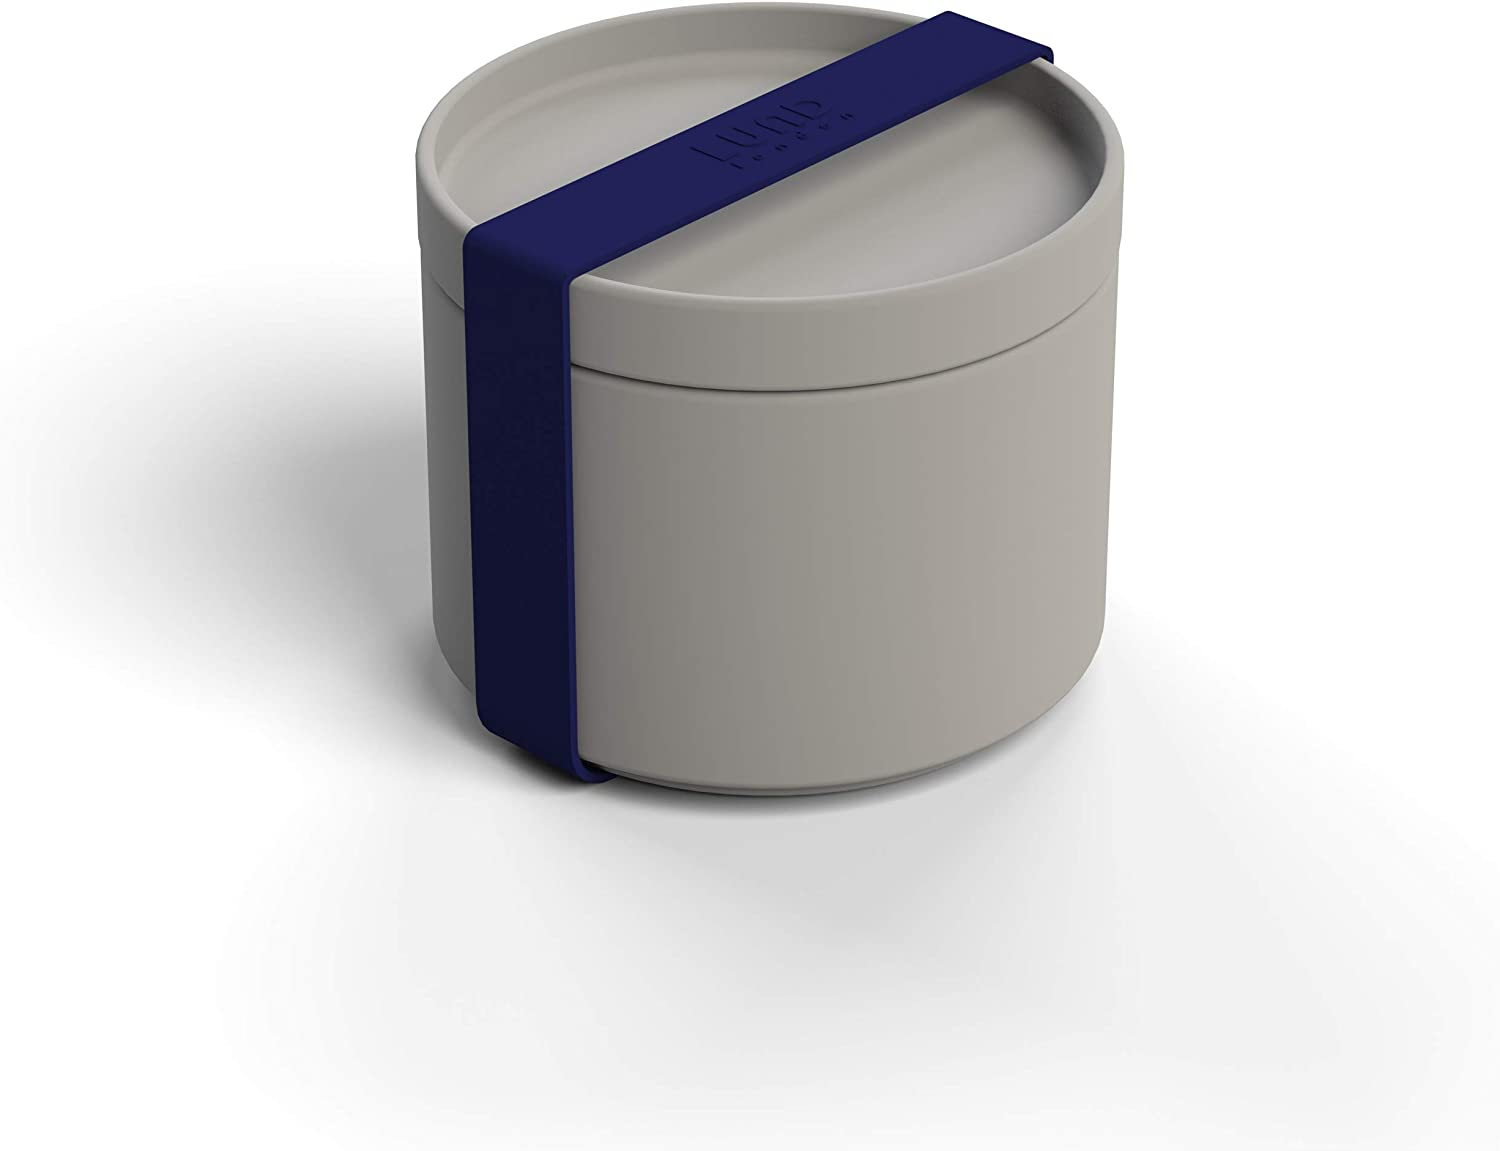 Snack Container, Made from Eco-Friendly Bamboo, BPA-Free, Leak Resistant, Dishwasher Safe, Grey